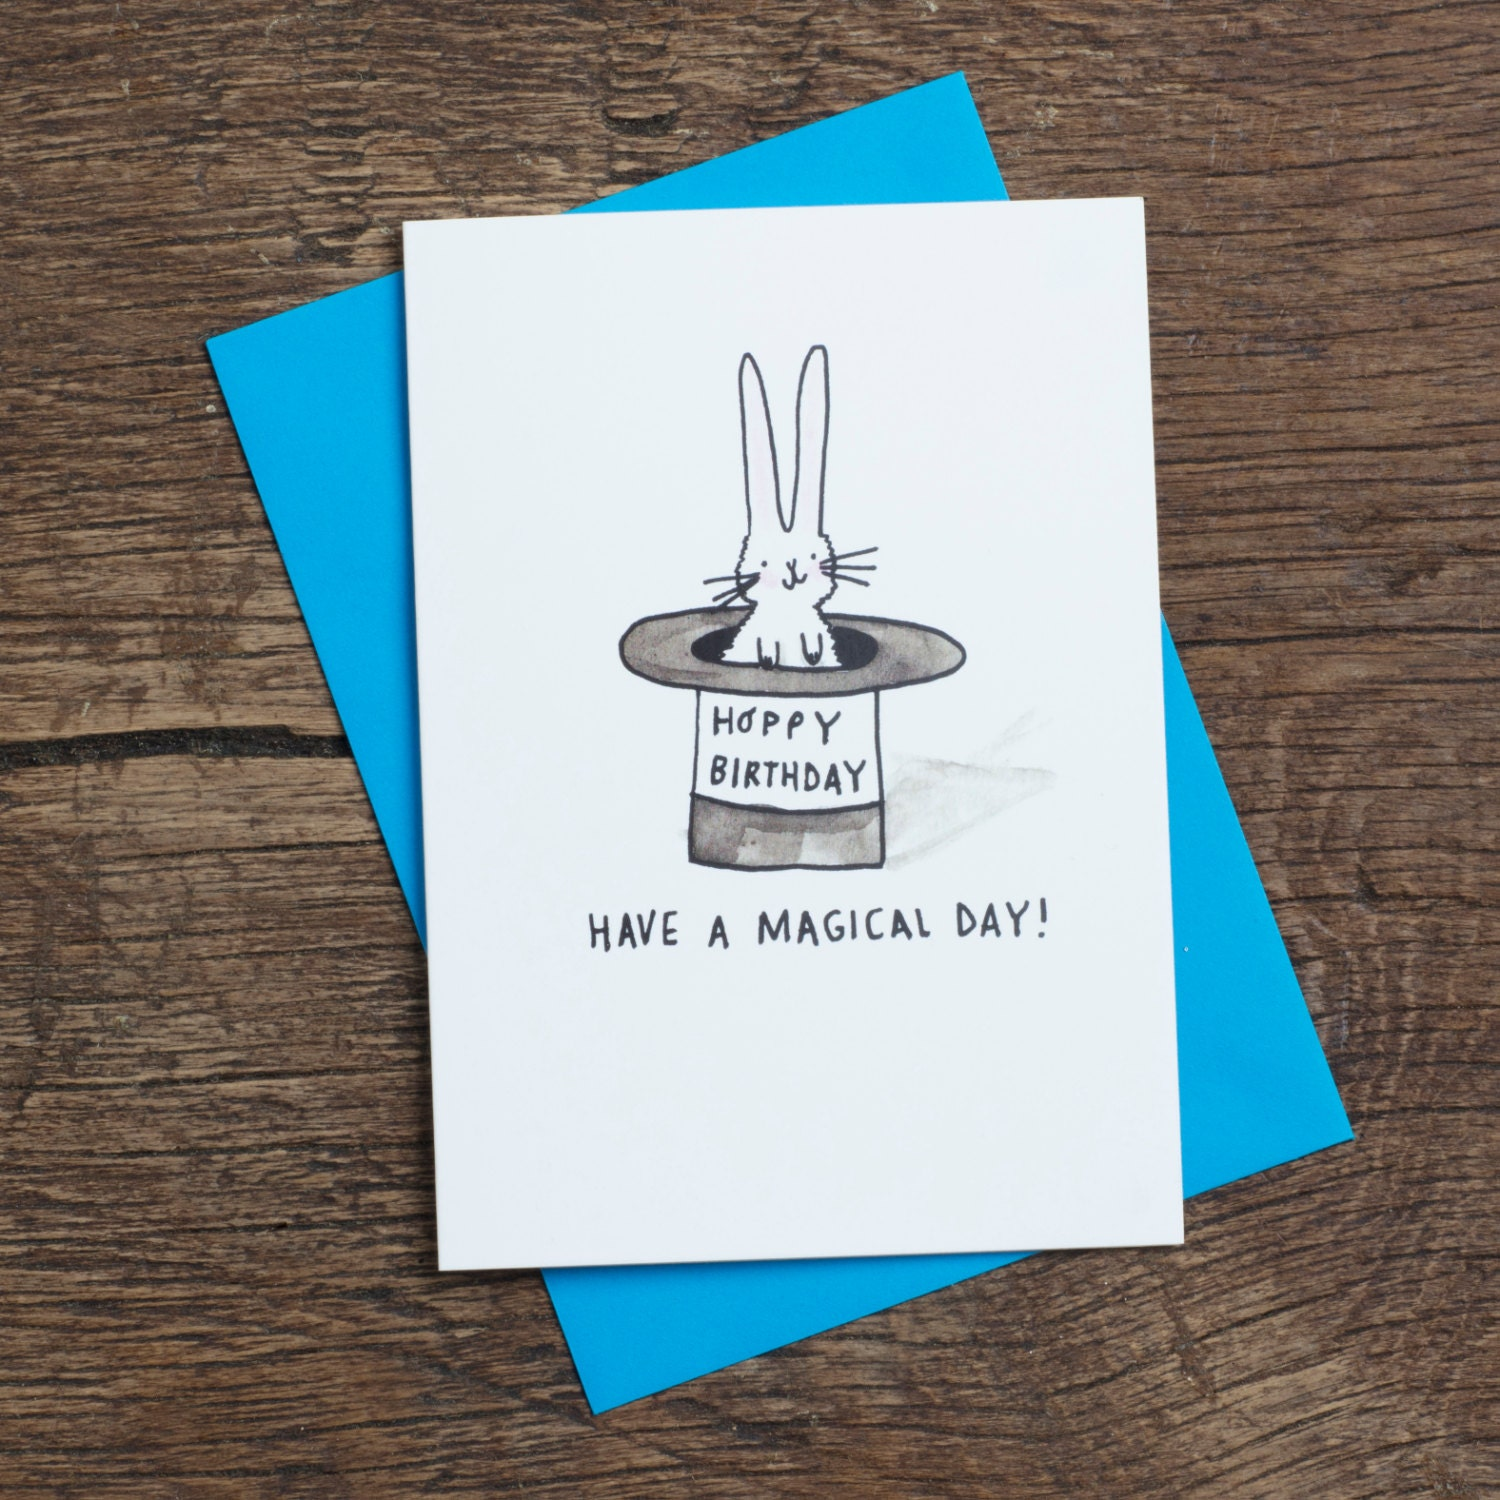 Have a magical day hoppy birthday greetings card humour zoom kristyandbryce Images